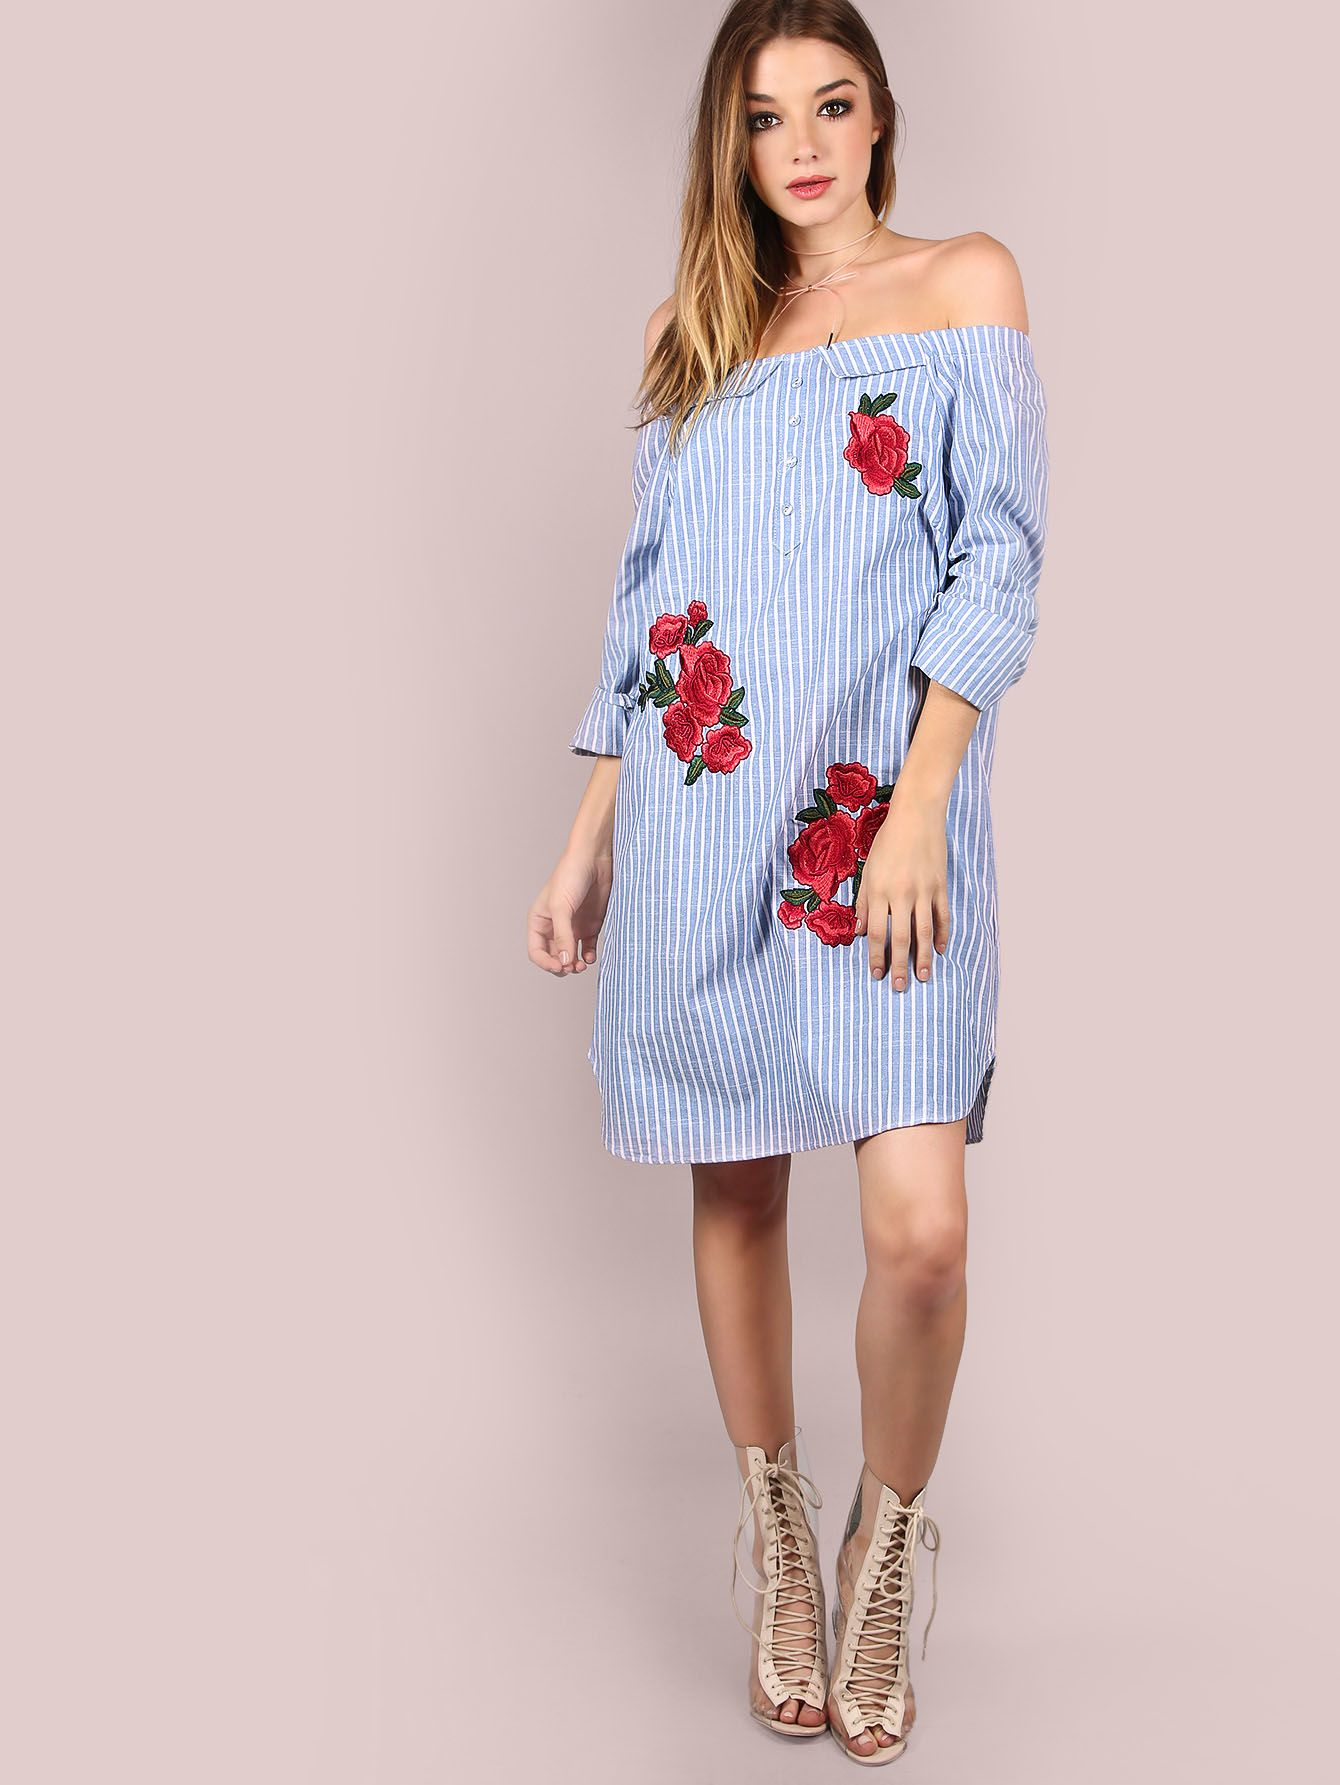 ae631cc45a5fc Featuring an open shoulder body with long sleeve arms, an elastic shoulder  band, a flowy bodice, fresh cotton stripe material, rose patches for added  ...